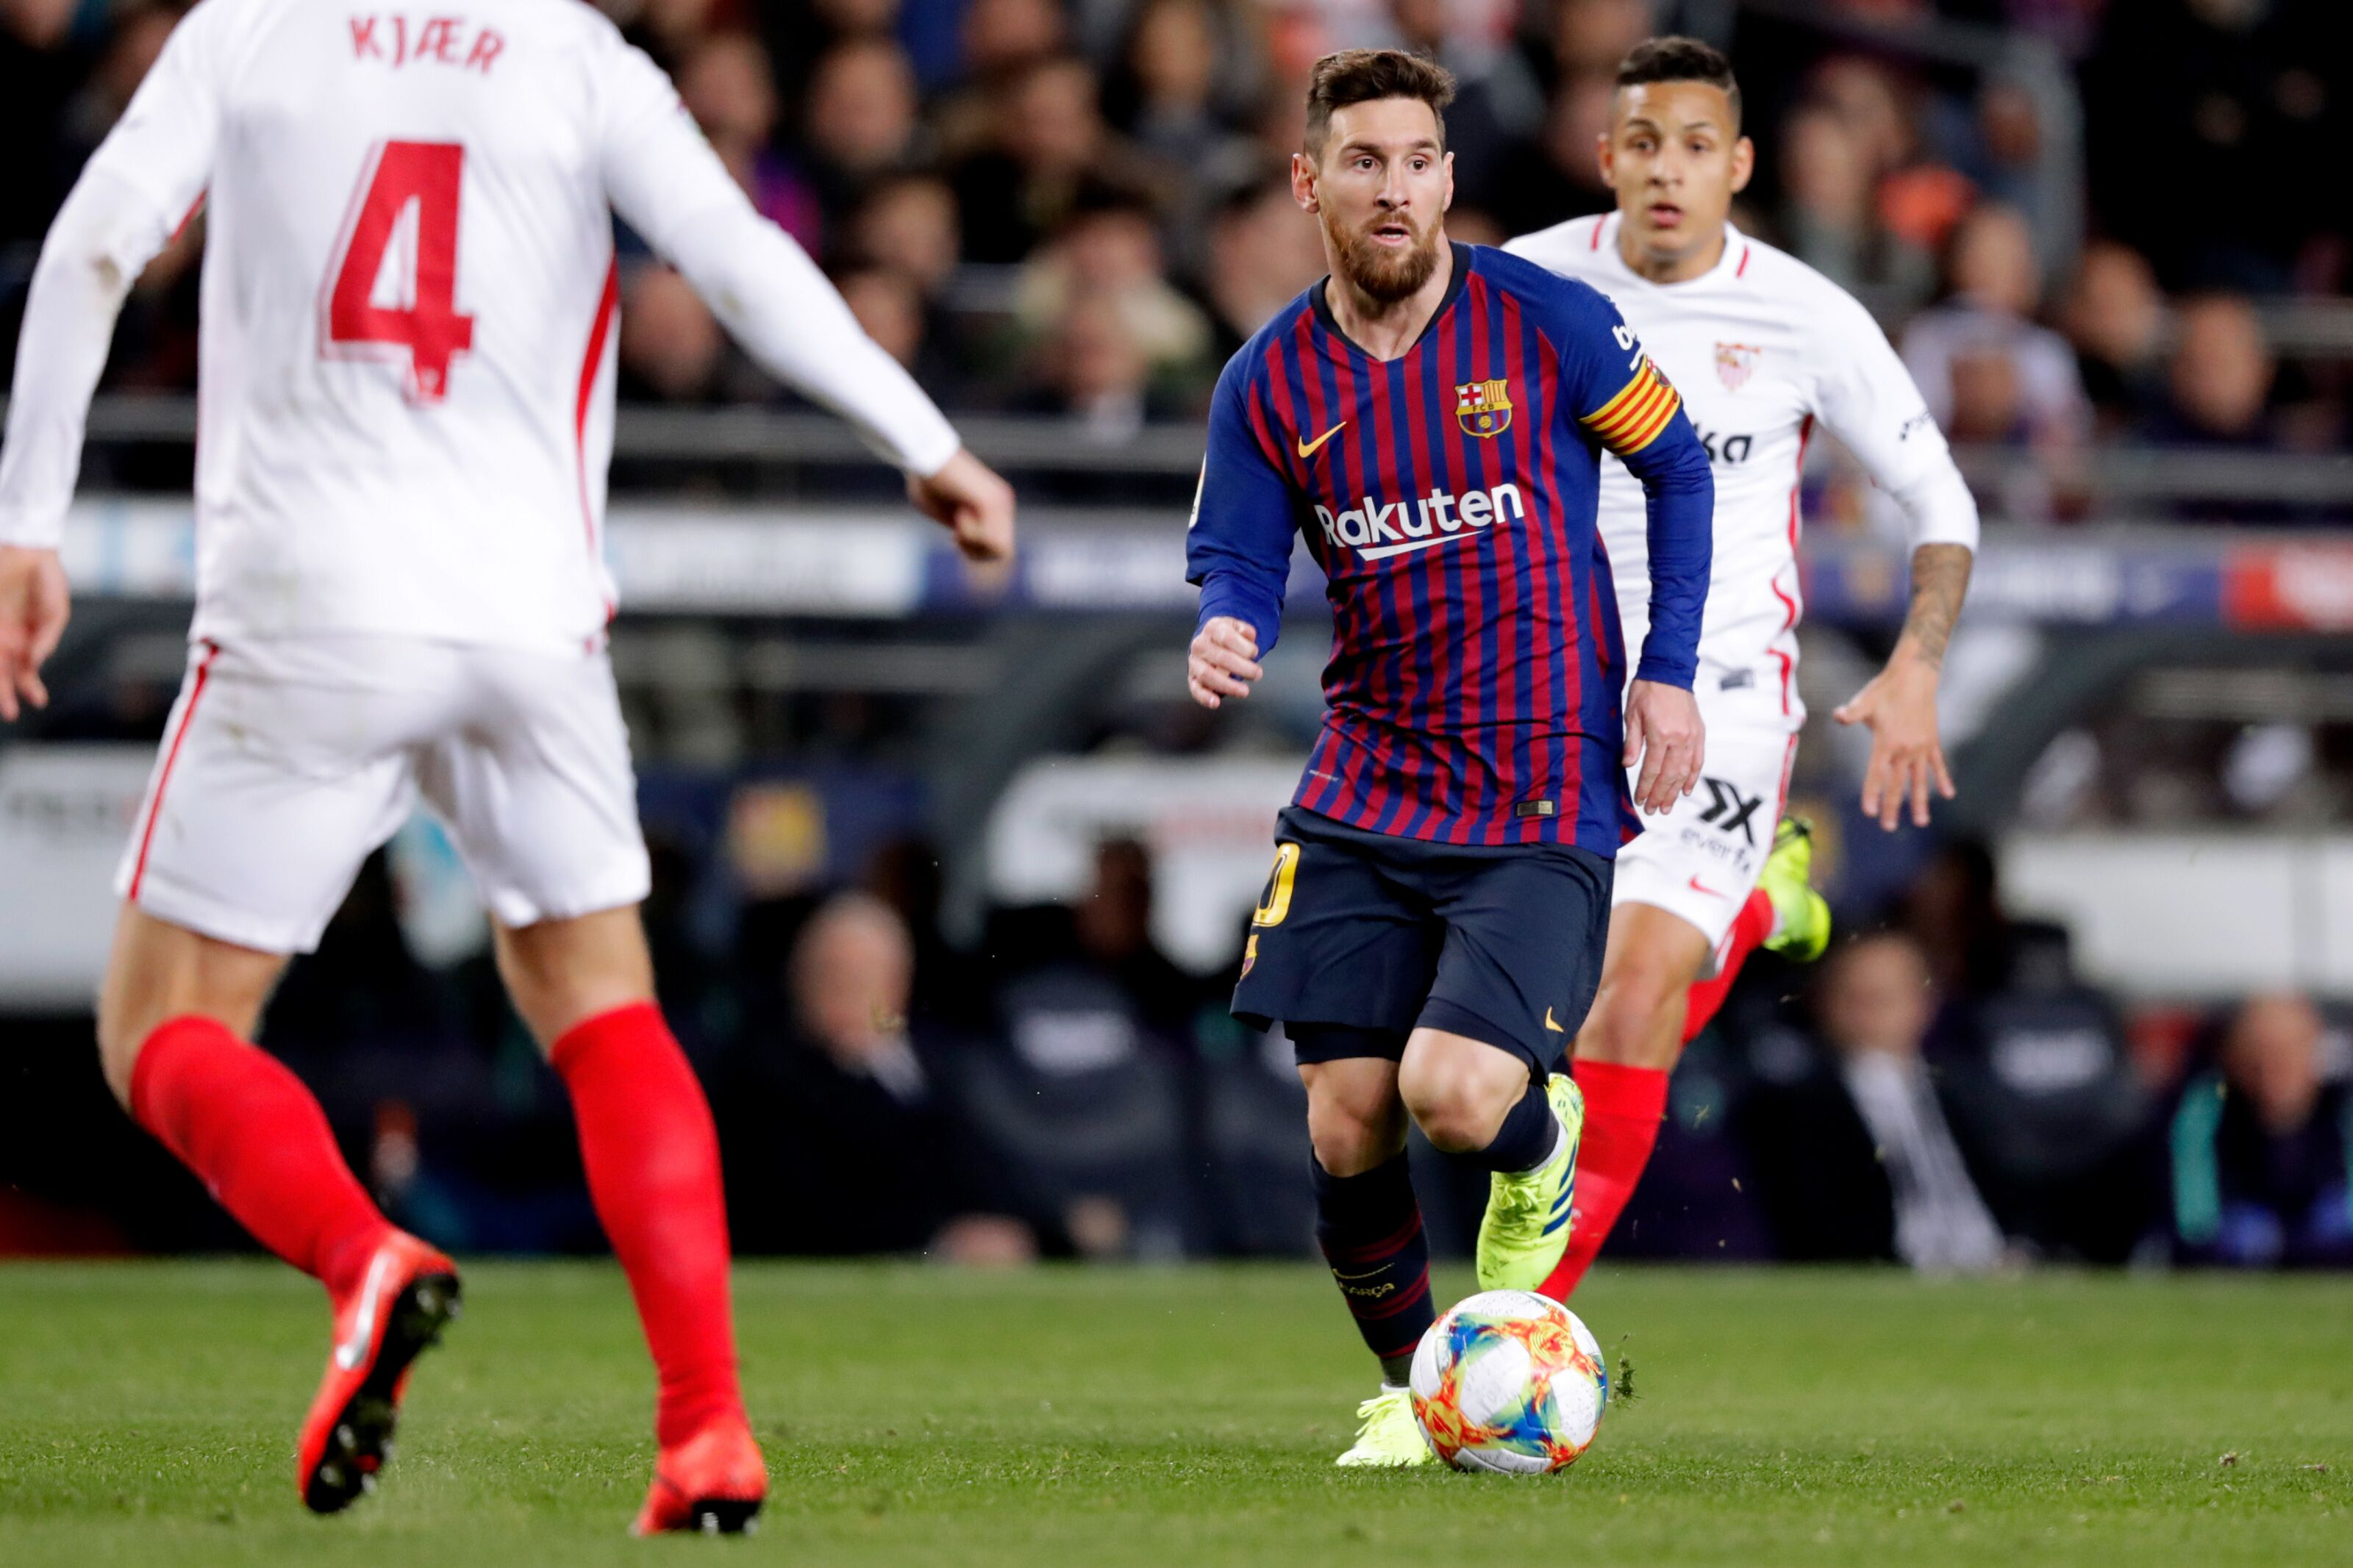 Sevilla and Barcelona face each other amid poor spells of form